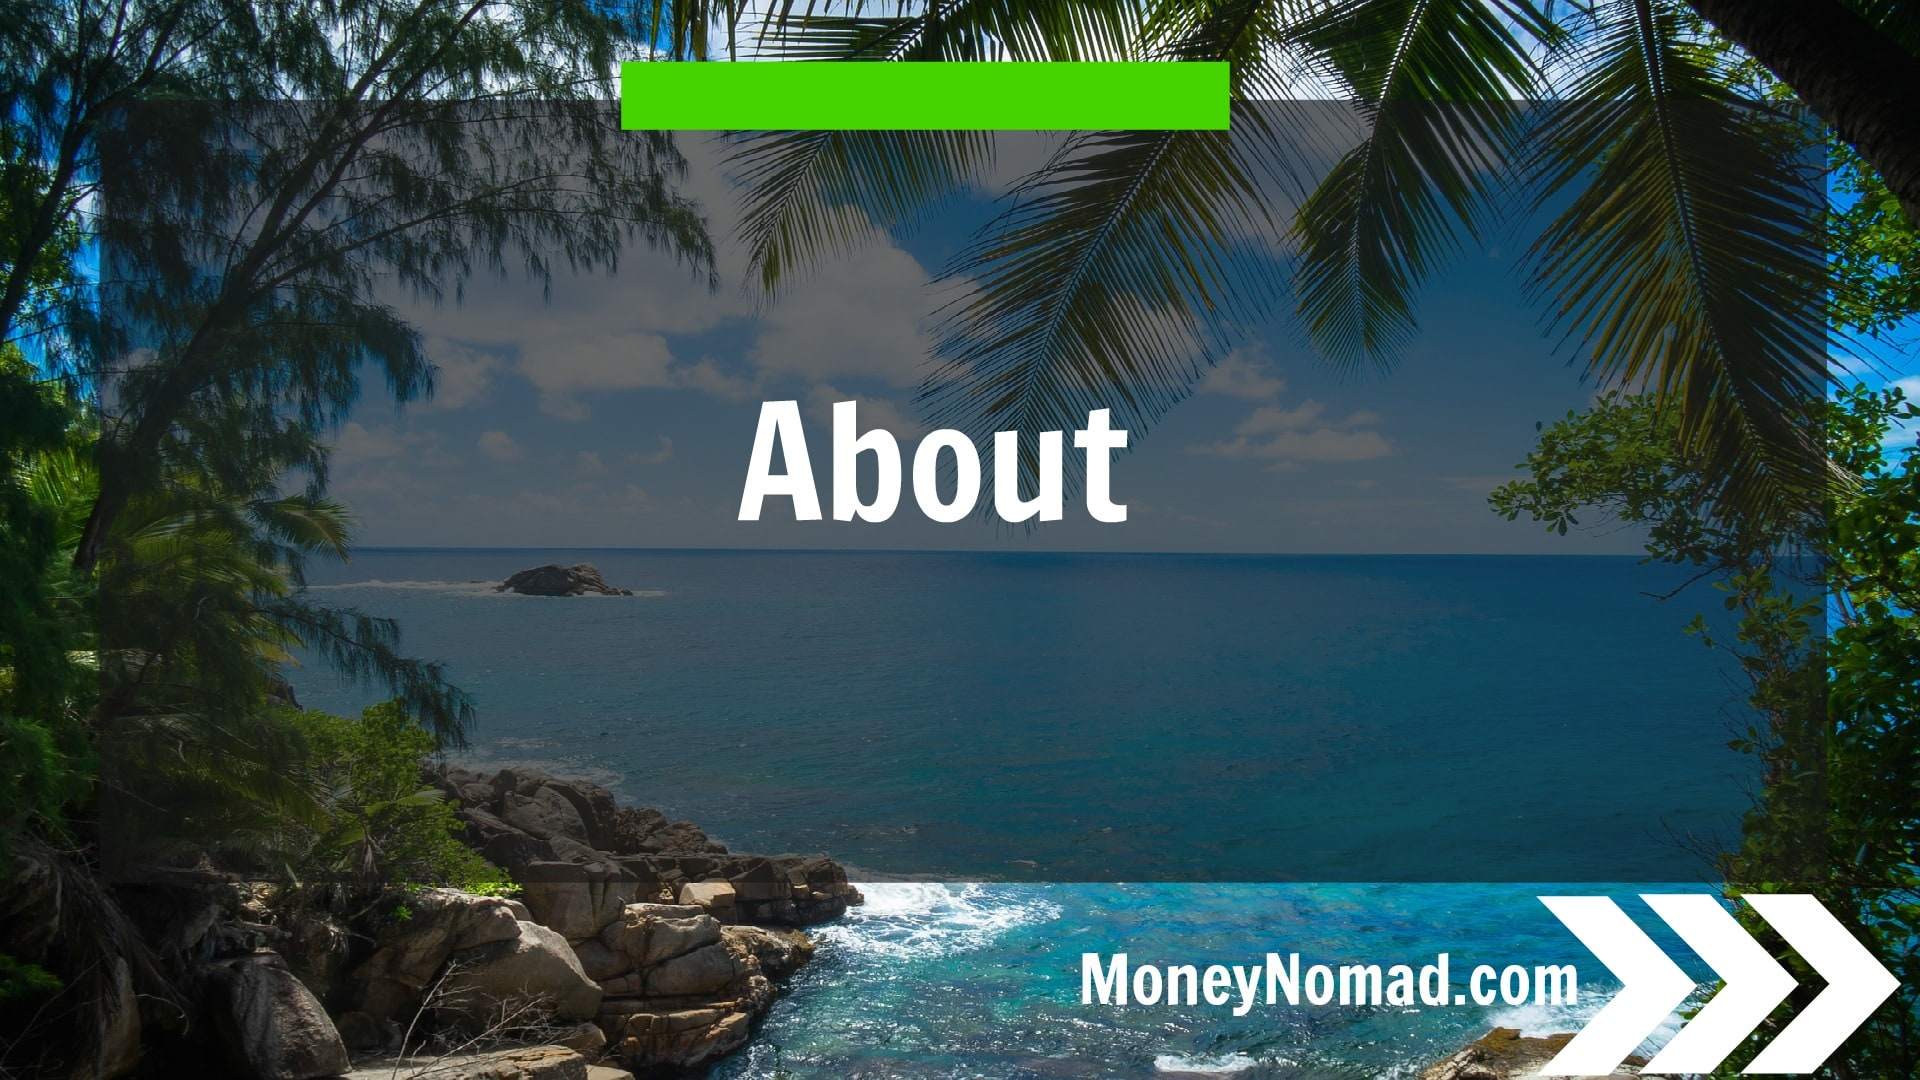 About Money Nomad